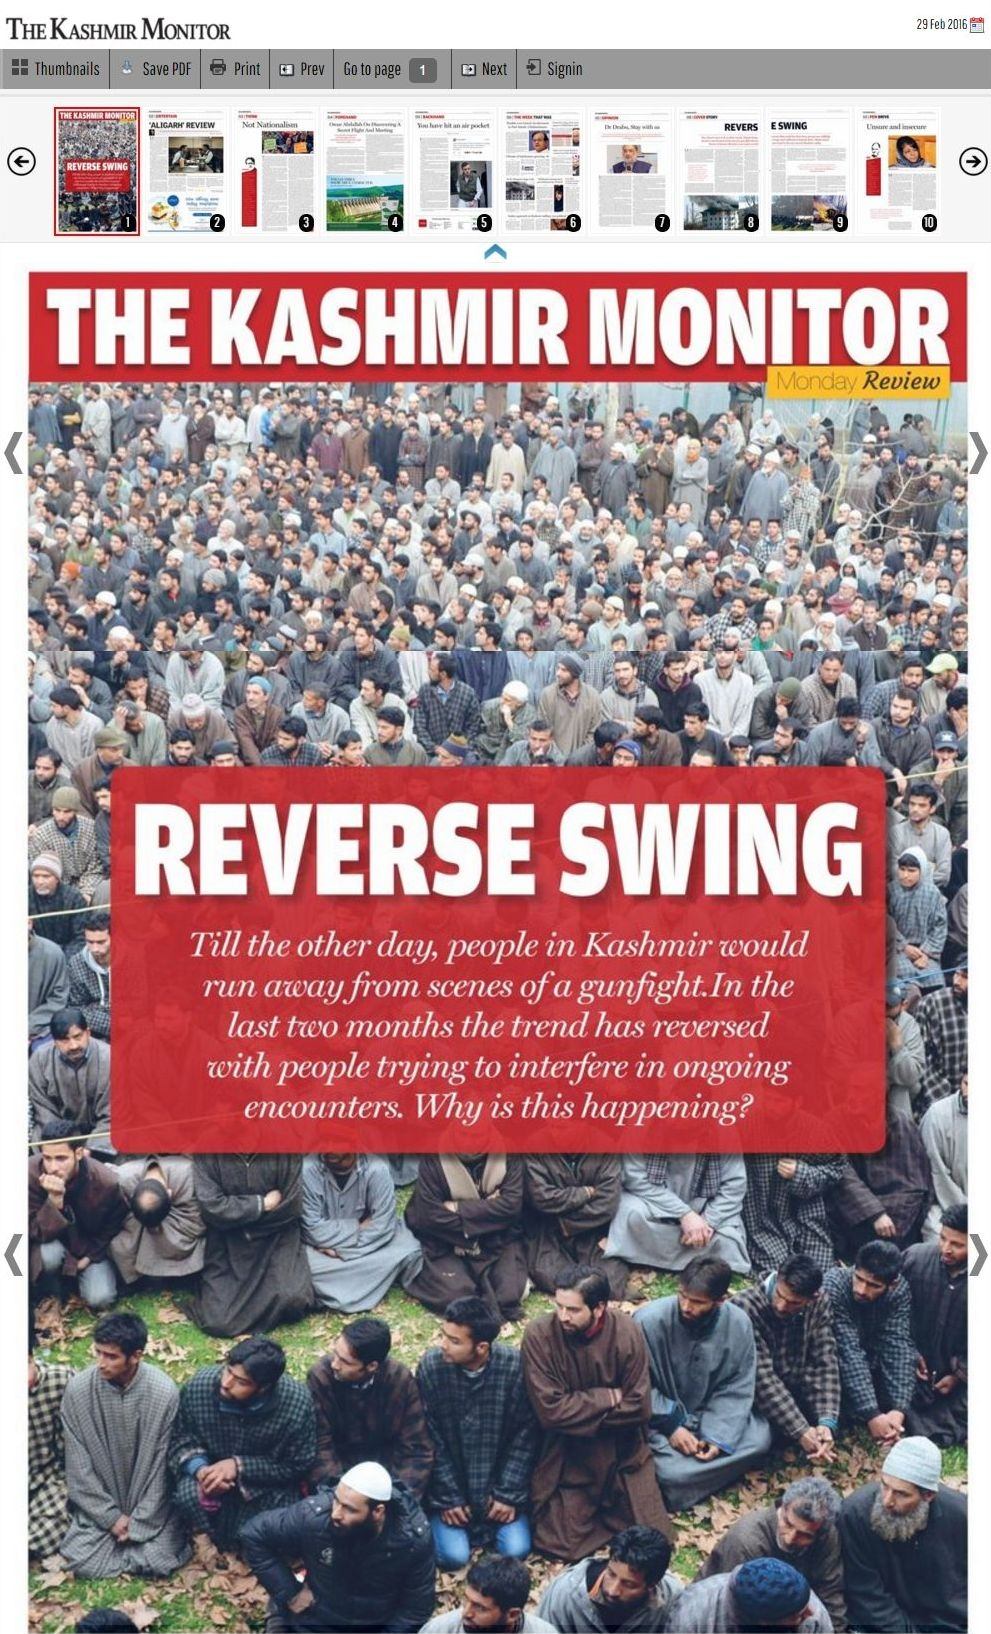 Reverse Swing: Fact versus rhetoric in Kashmiri Journalism